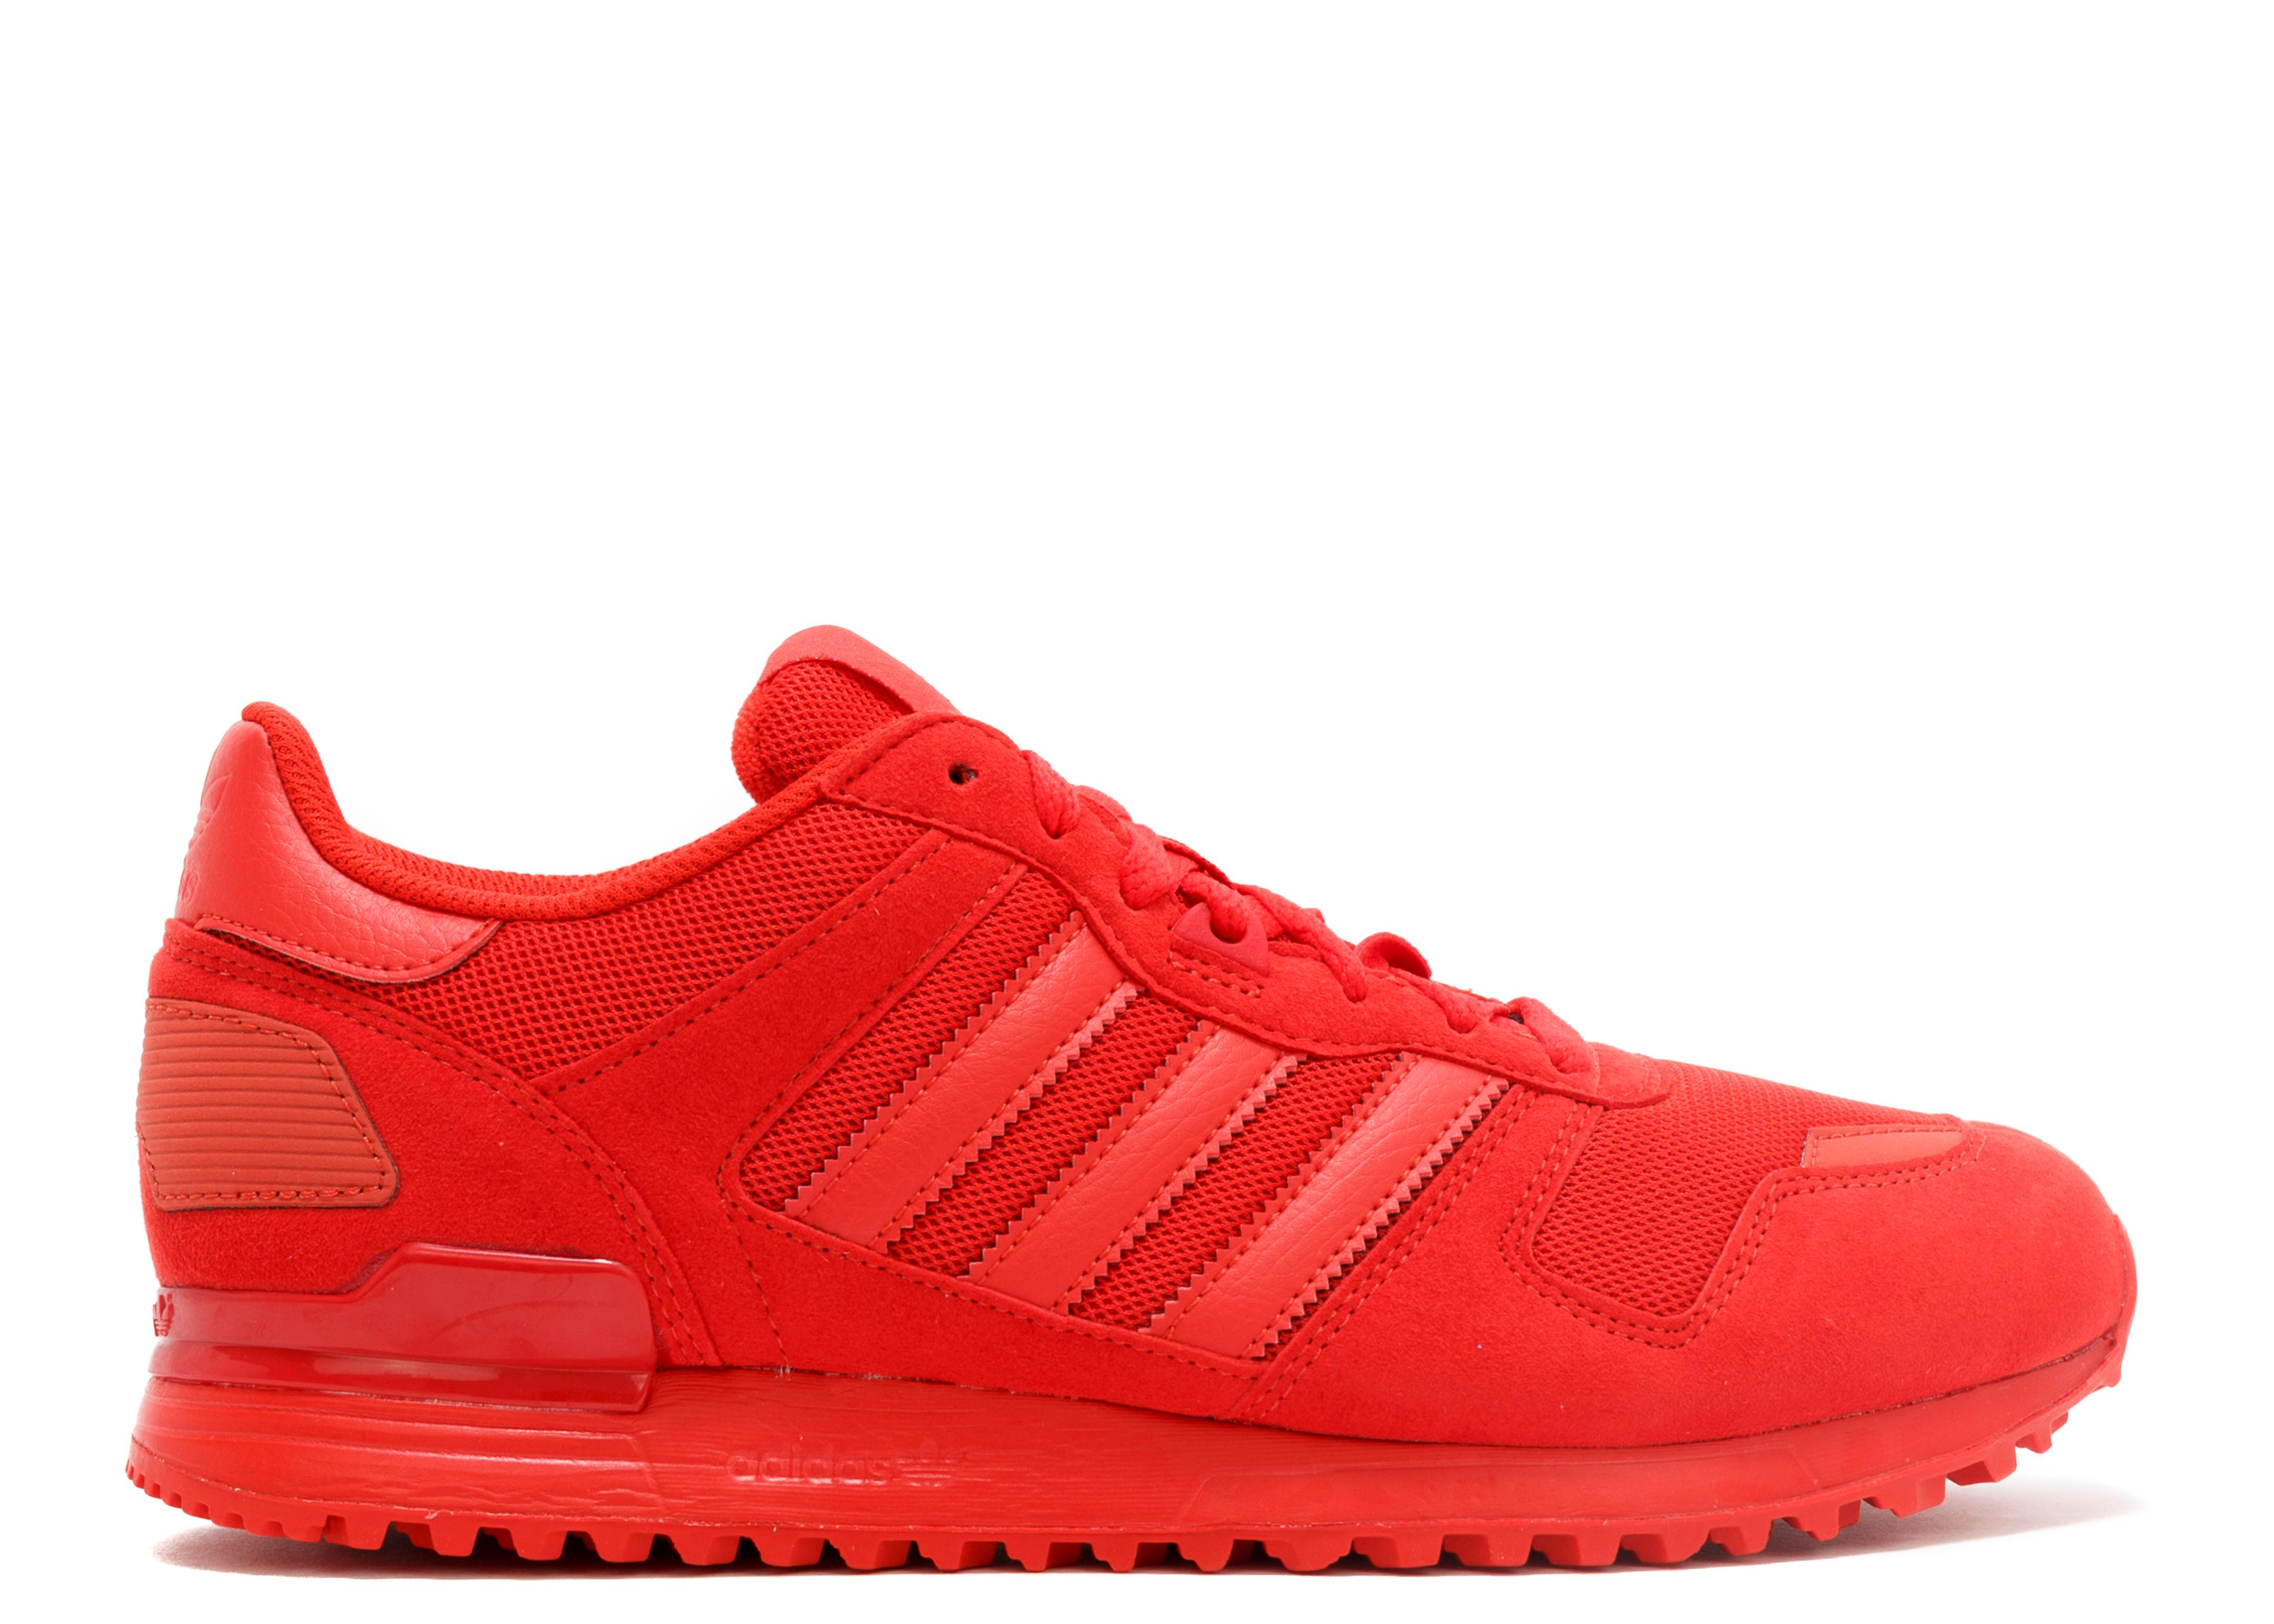 adidas zx 700 triple red